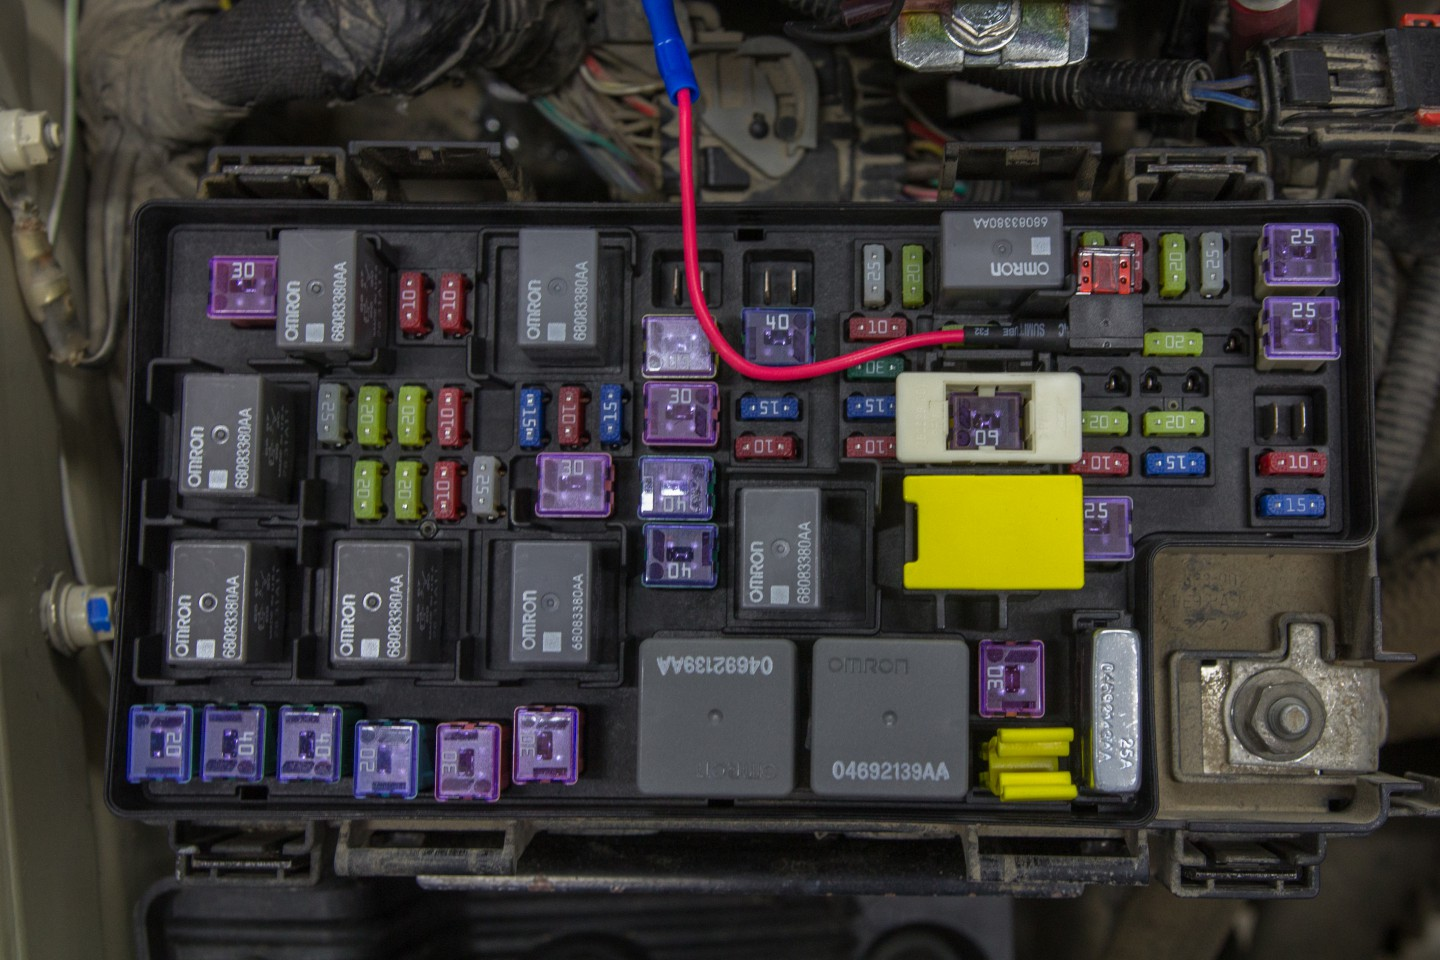 jk wrangler dual batteries trigger wire in fuse block 1440x960 2016 jeep jk fuse box diagram 1999 jeep wrangler fuse box diagram 2014 Jeep Wrangler Fuse Box Diagram at gsmx.co